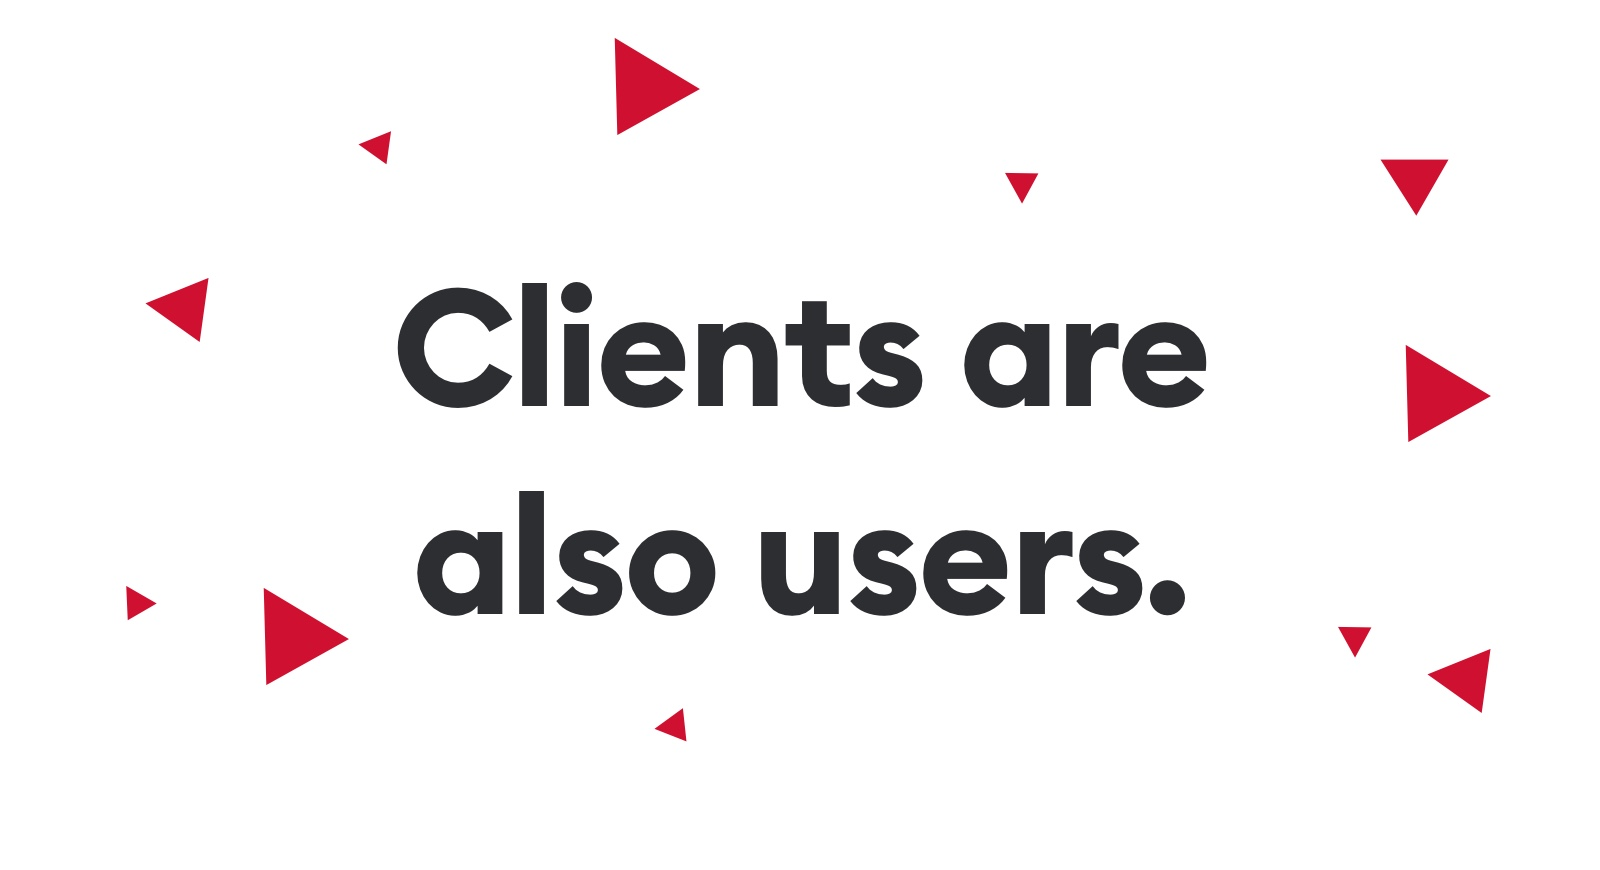 Clients are also users themselves